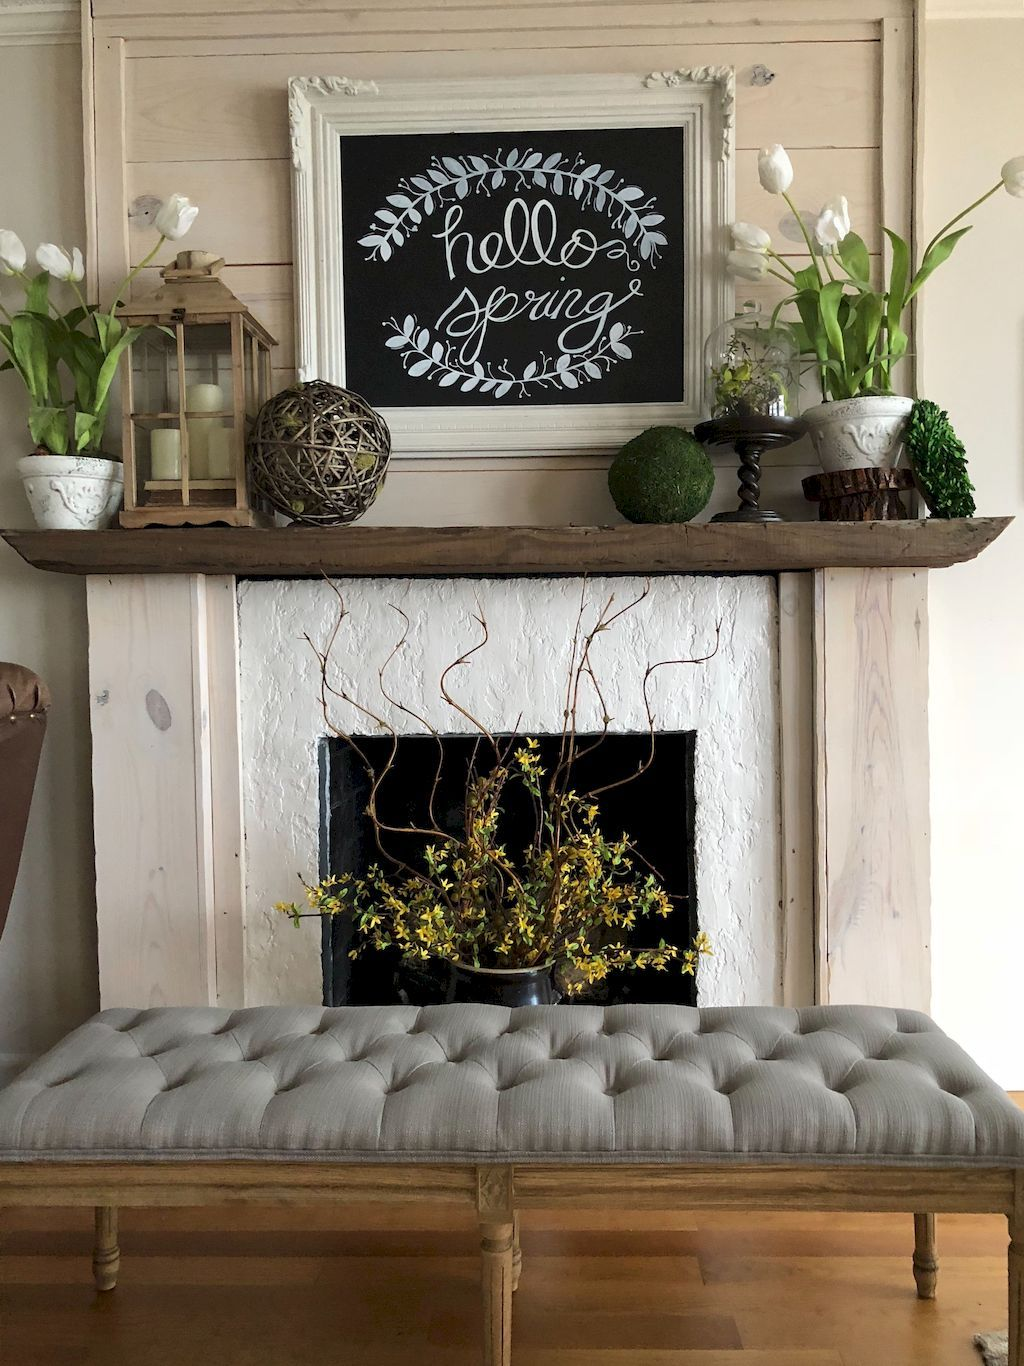 55 Awesome Spring Mantel Decorating Ideas images